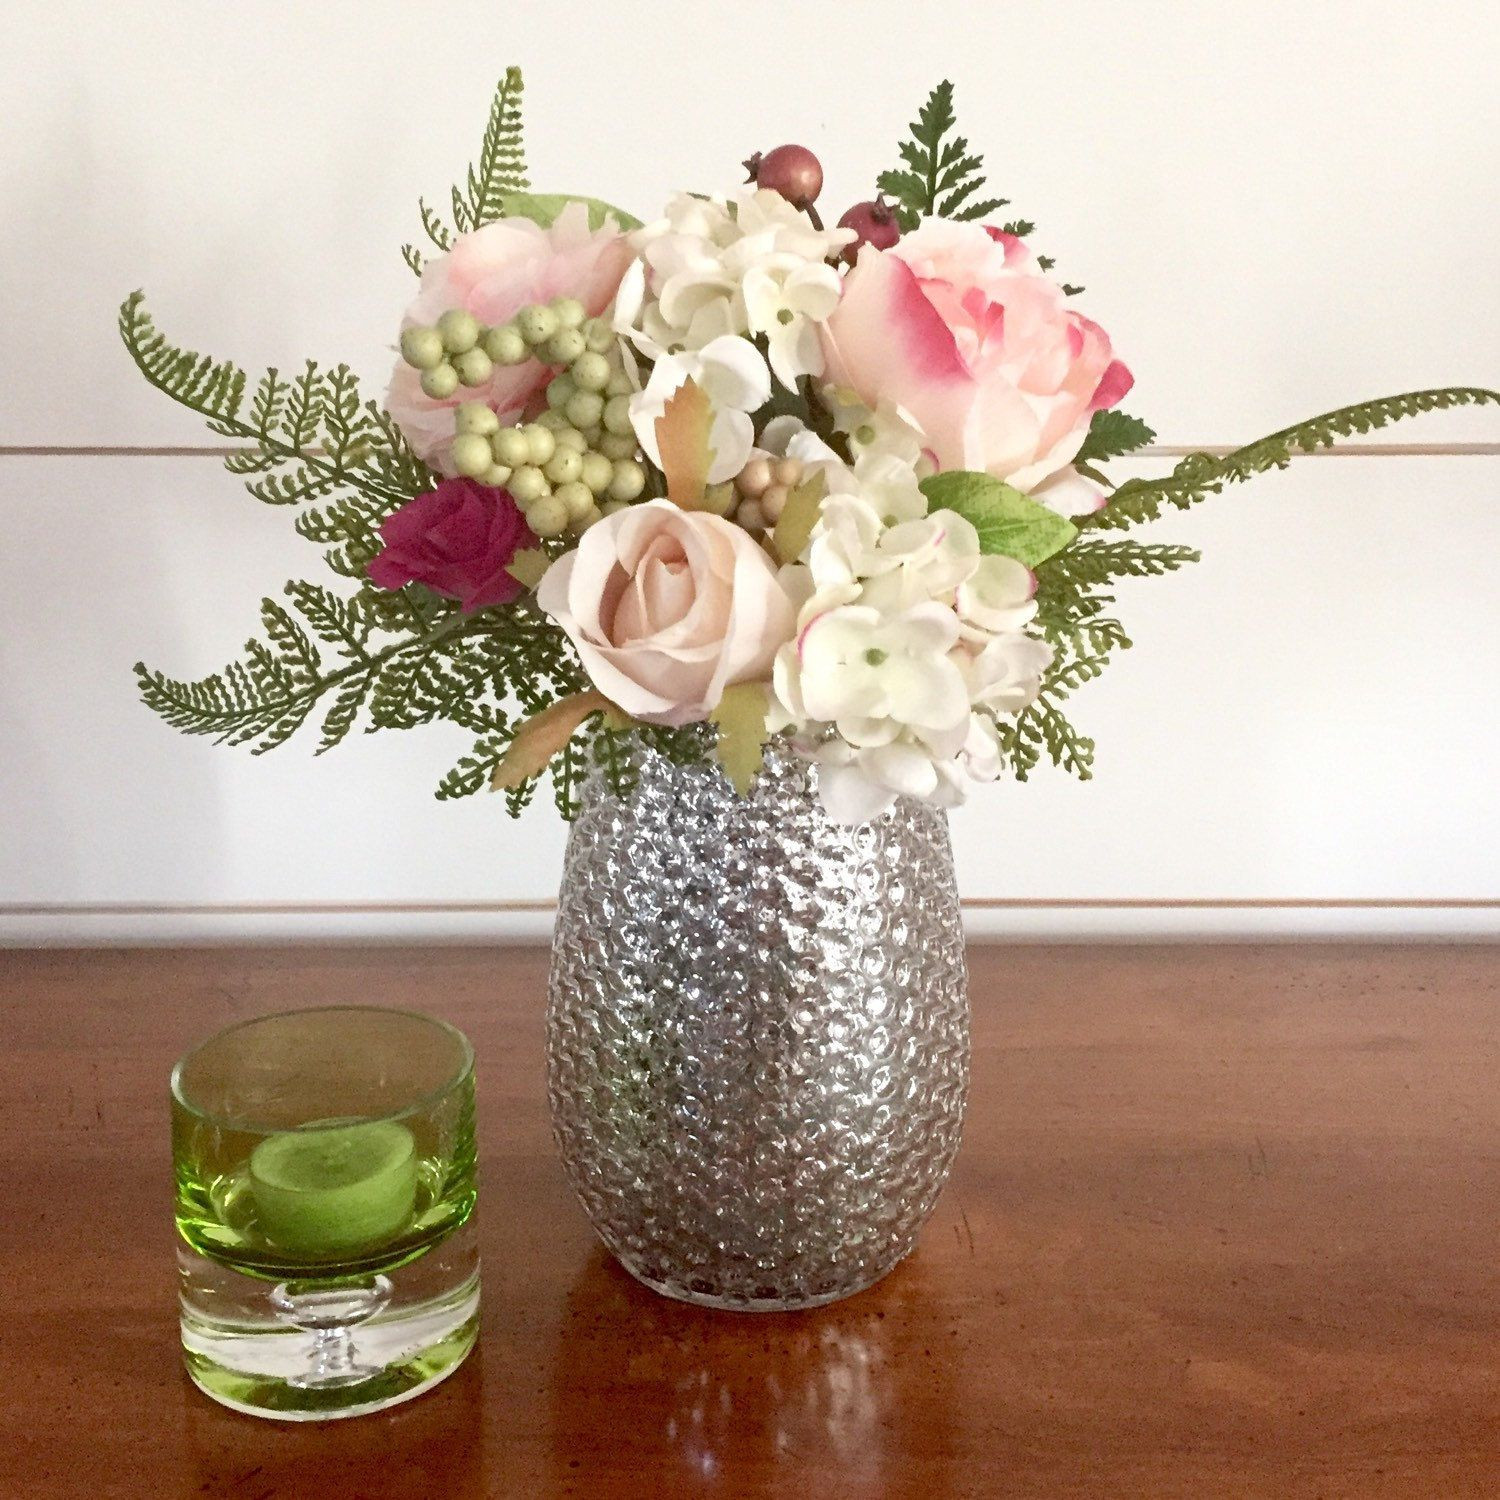 Lovely vintage hobnailed mercury glass vase spring summer floral arrangement centerpiece